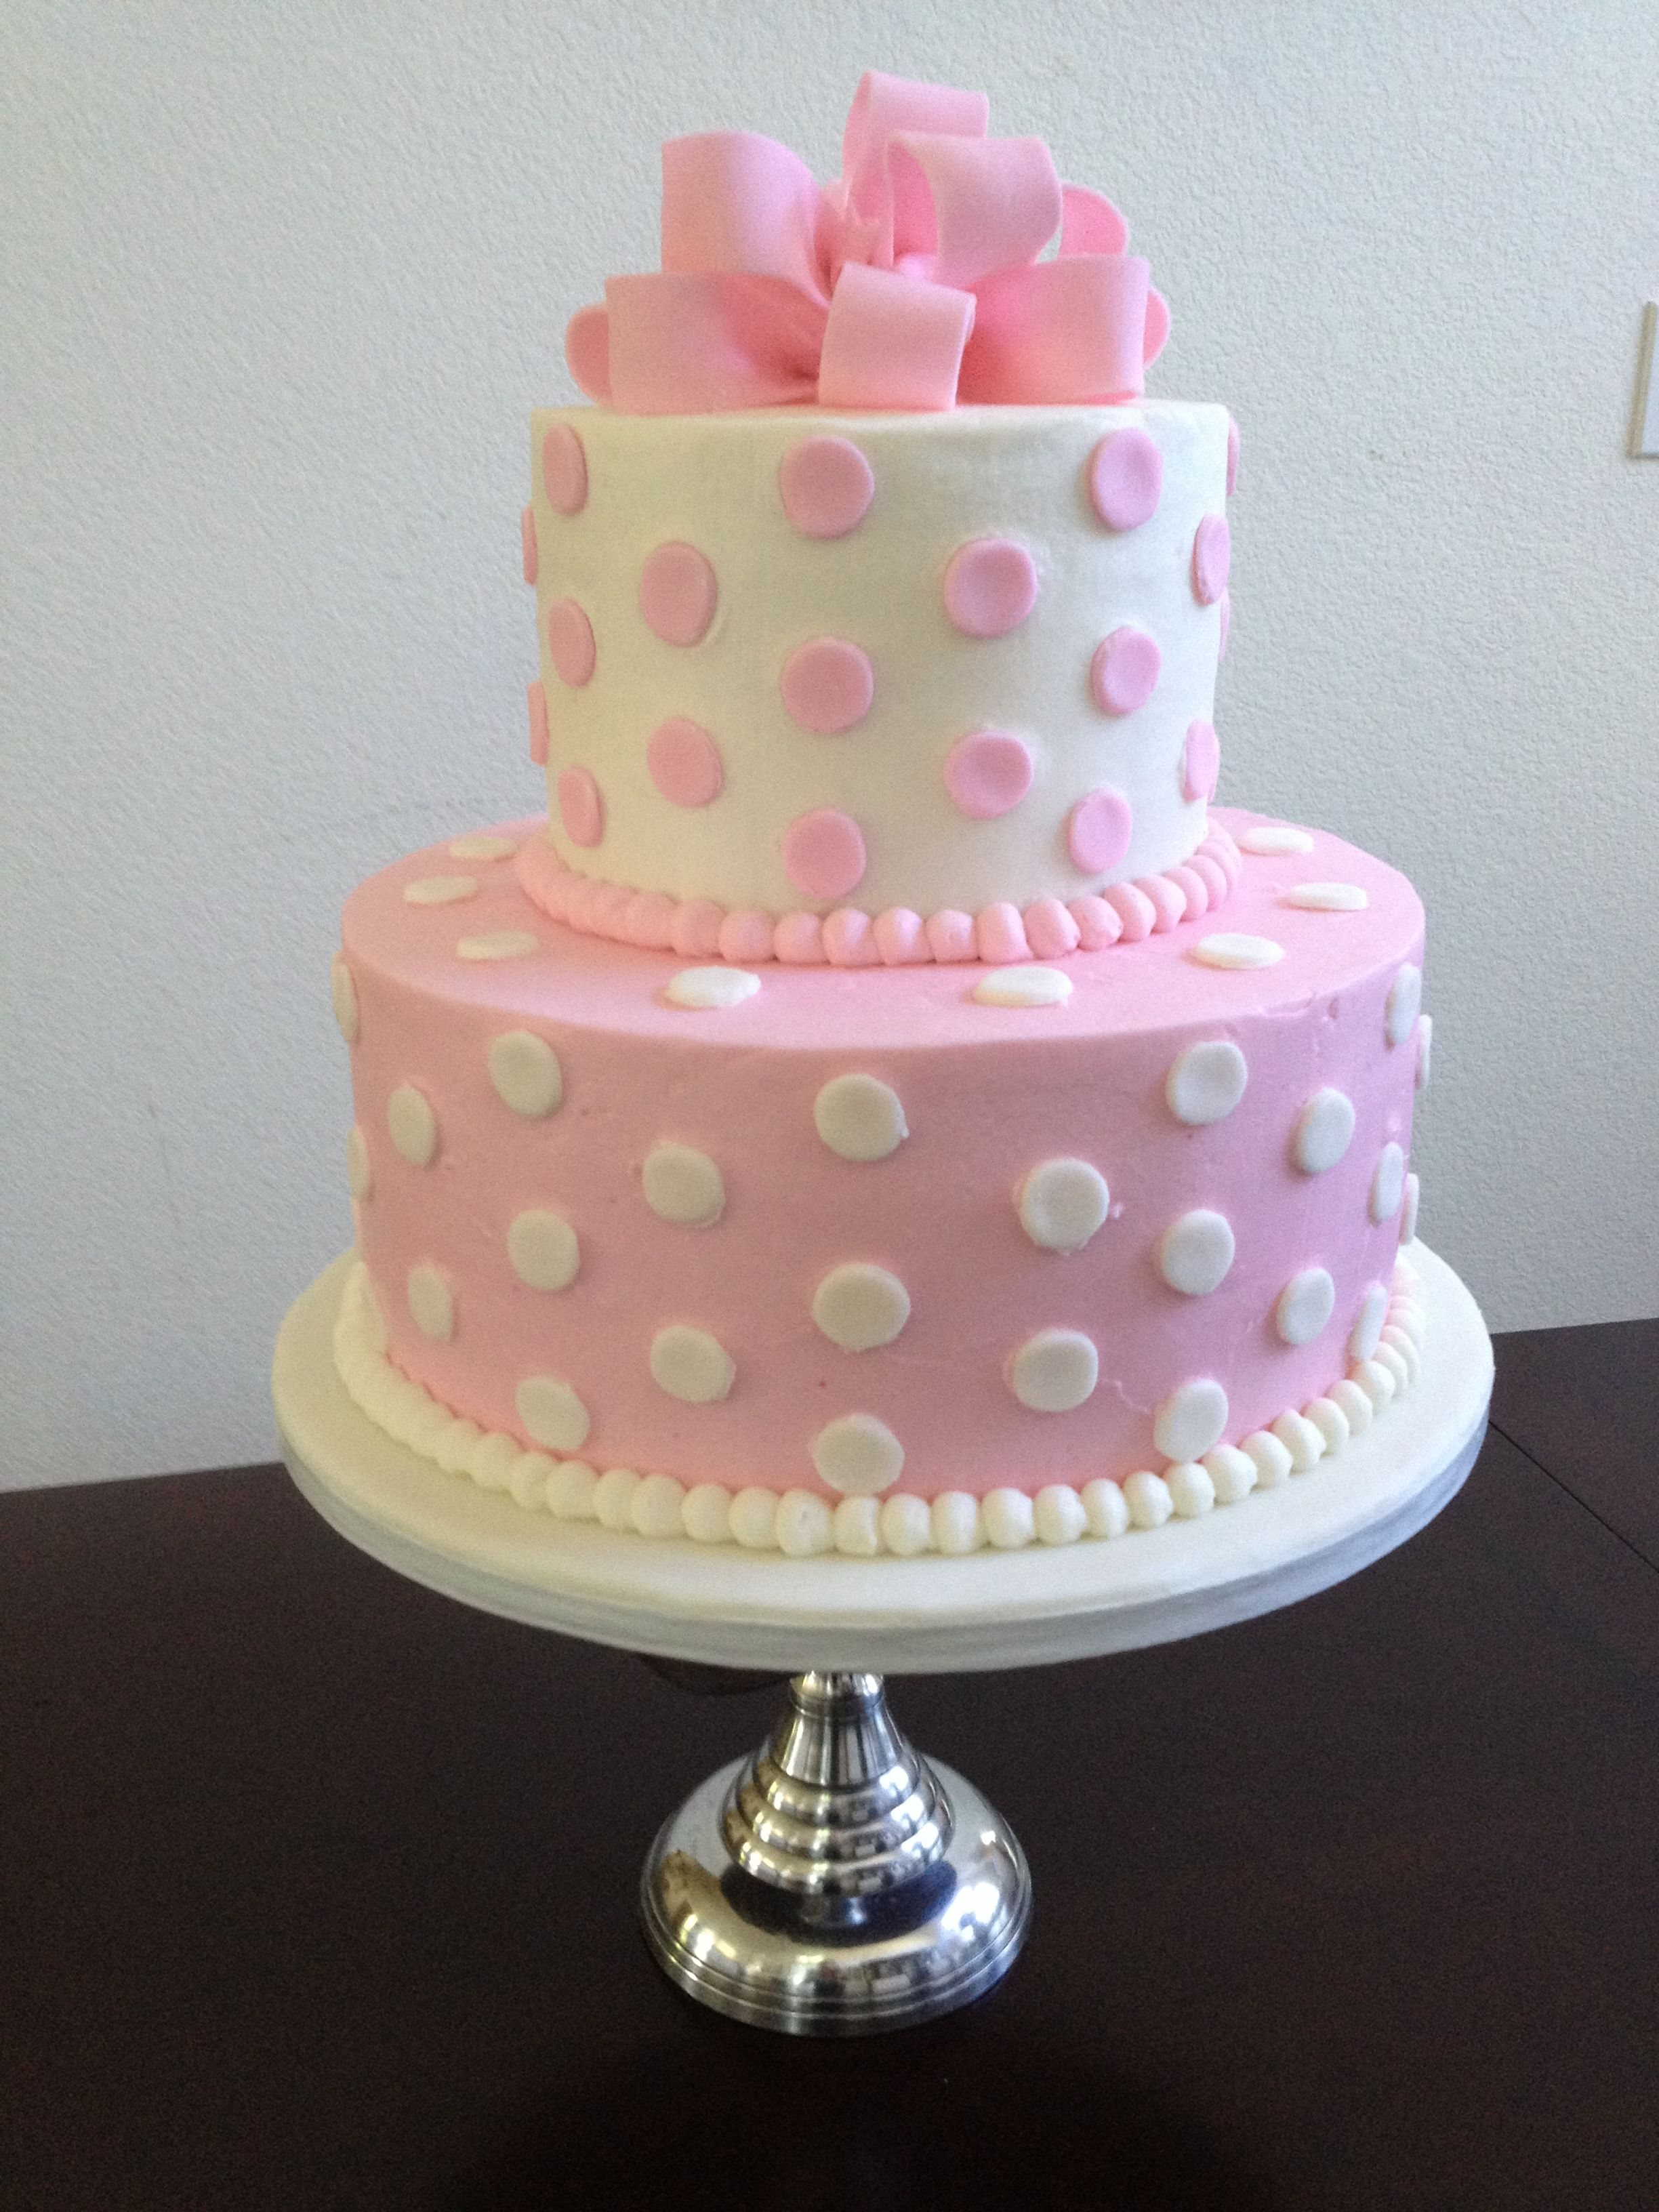 Pin By Ada De Los Santos On Cakes Pinterest Cake Birthday And